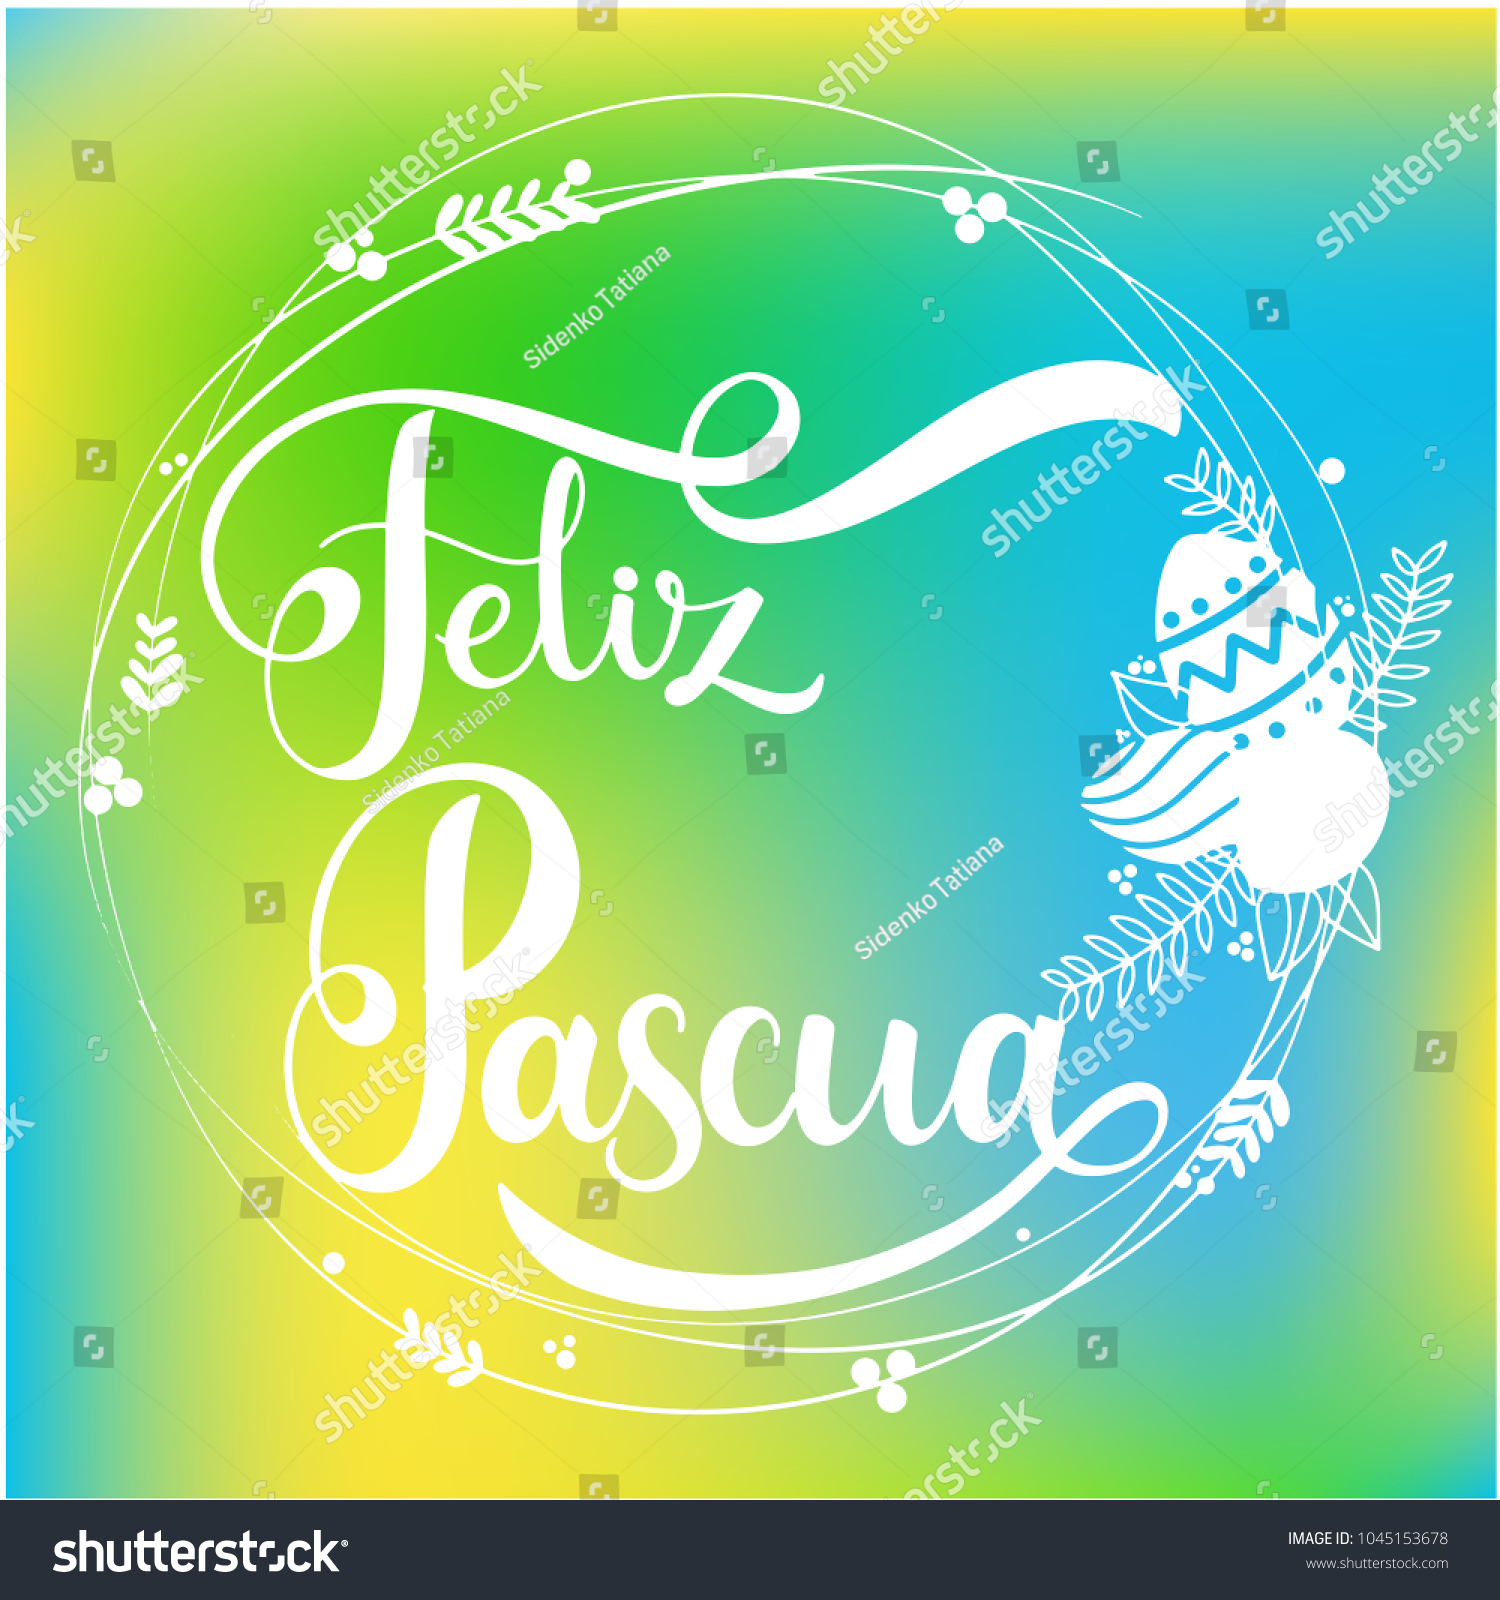 Feliz Pascua Colorful Lettering Happy Easter Stock Vector 1045153678